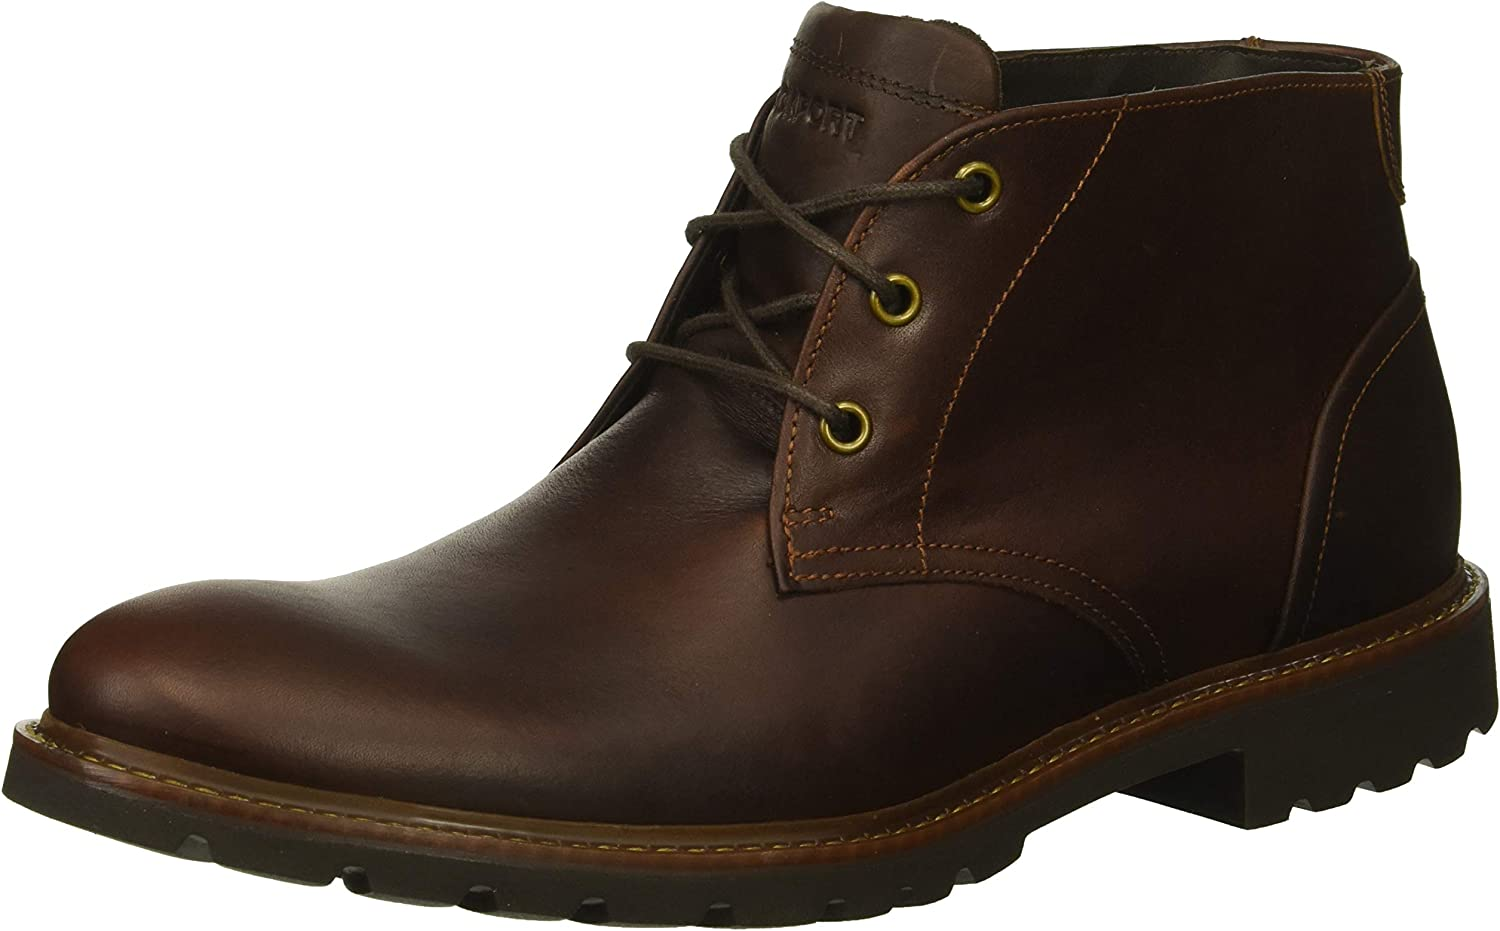 Mesa Mall Rockport Men's Sharp Popular shop is the lowest price challenge and Oxford Chukka Ready